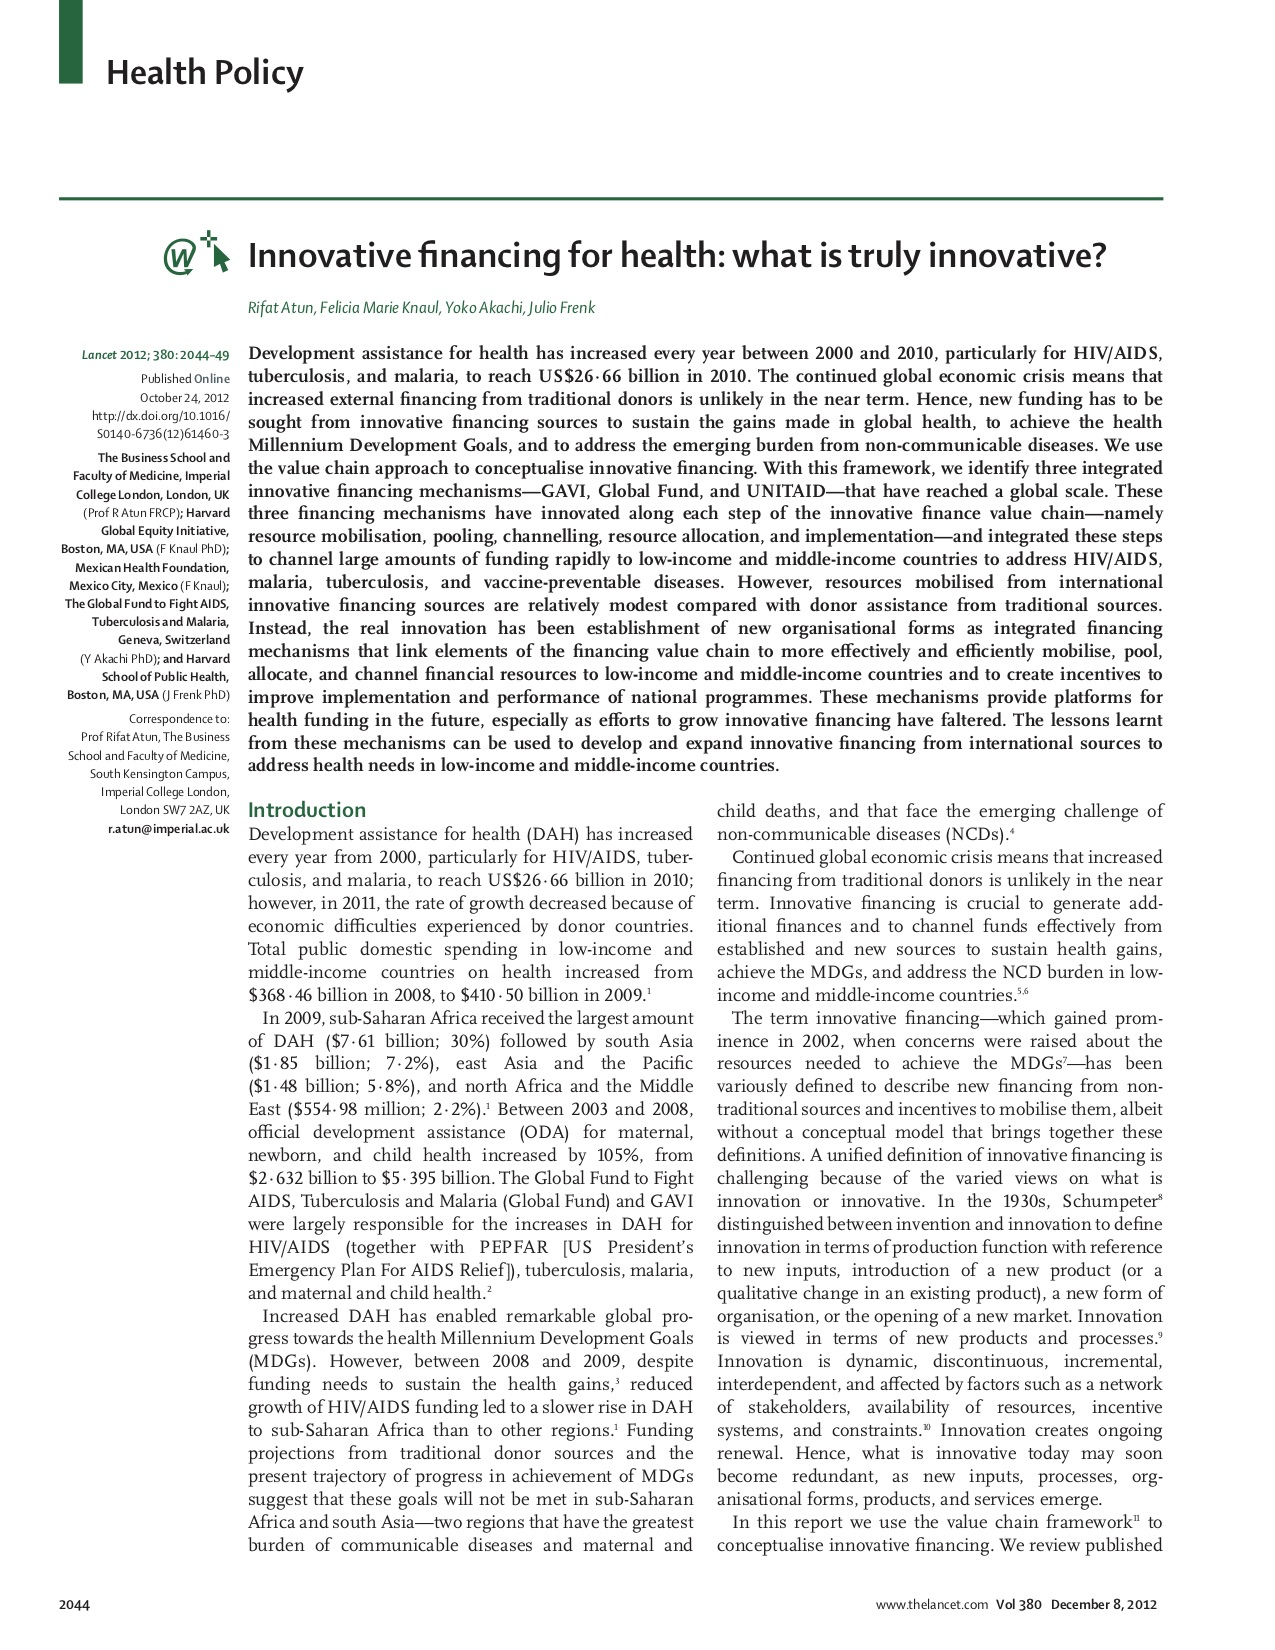 Innovative Financing for Health: What is Truly Innovative?